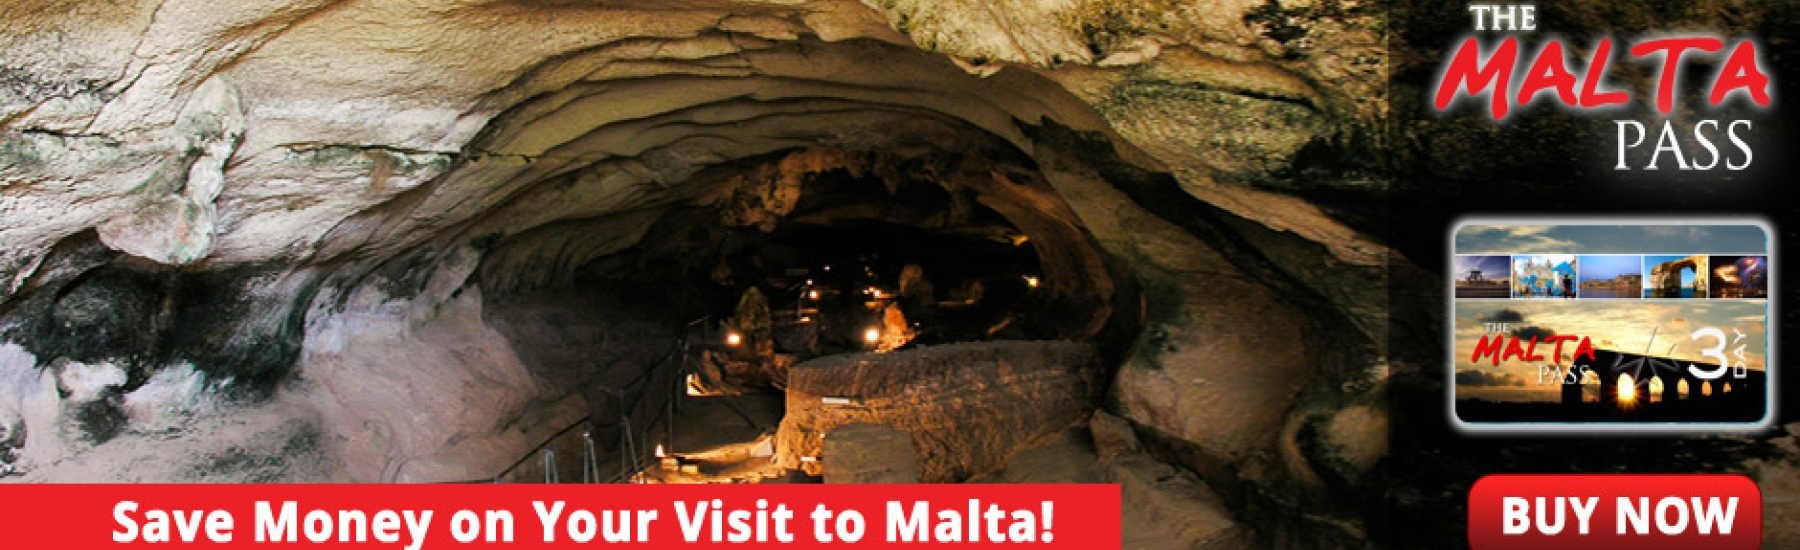 Save Money on holiday in Malta when Visiting Tourist Attractions with the Malta Pass